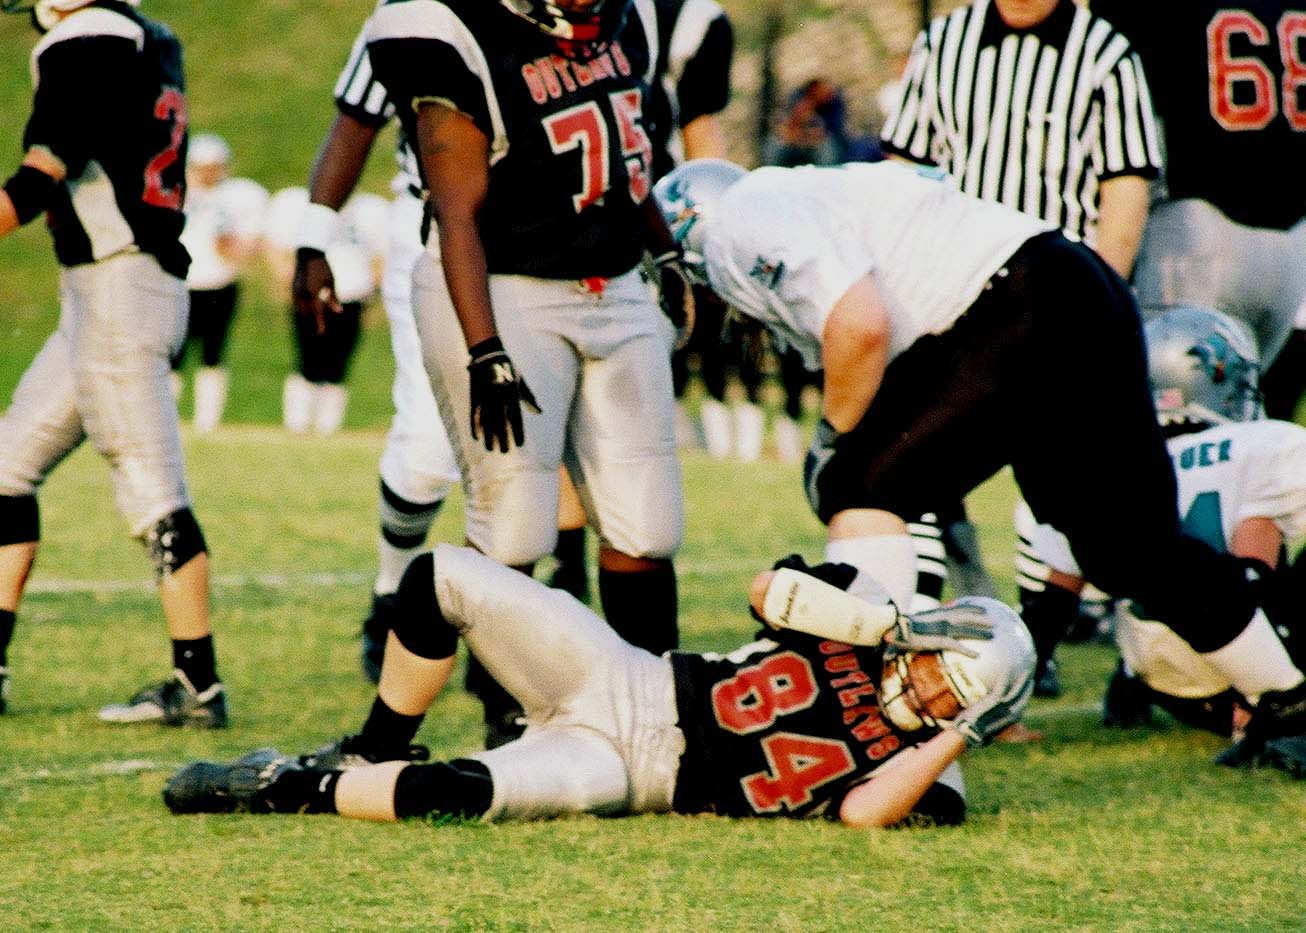 injuries in football See nata video heads up: reducing the risk of head and neck injuries in football video.